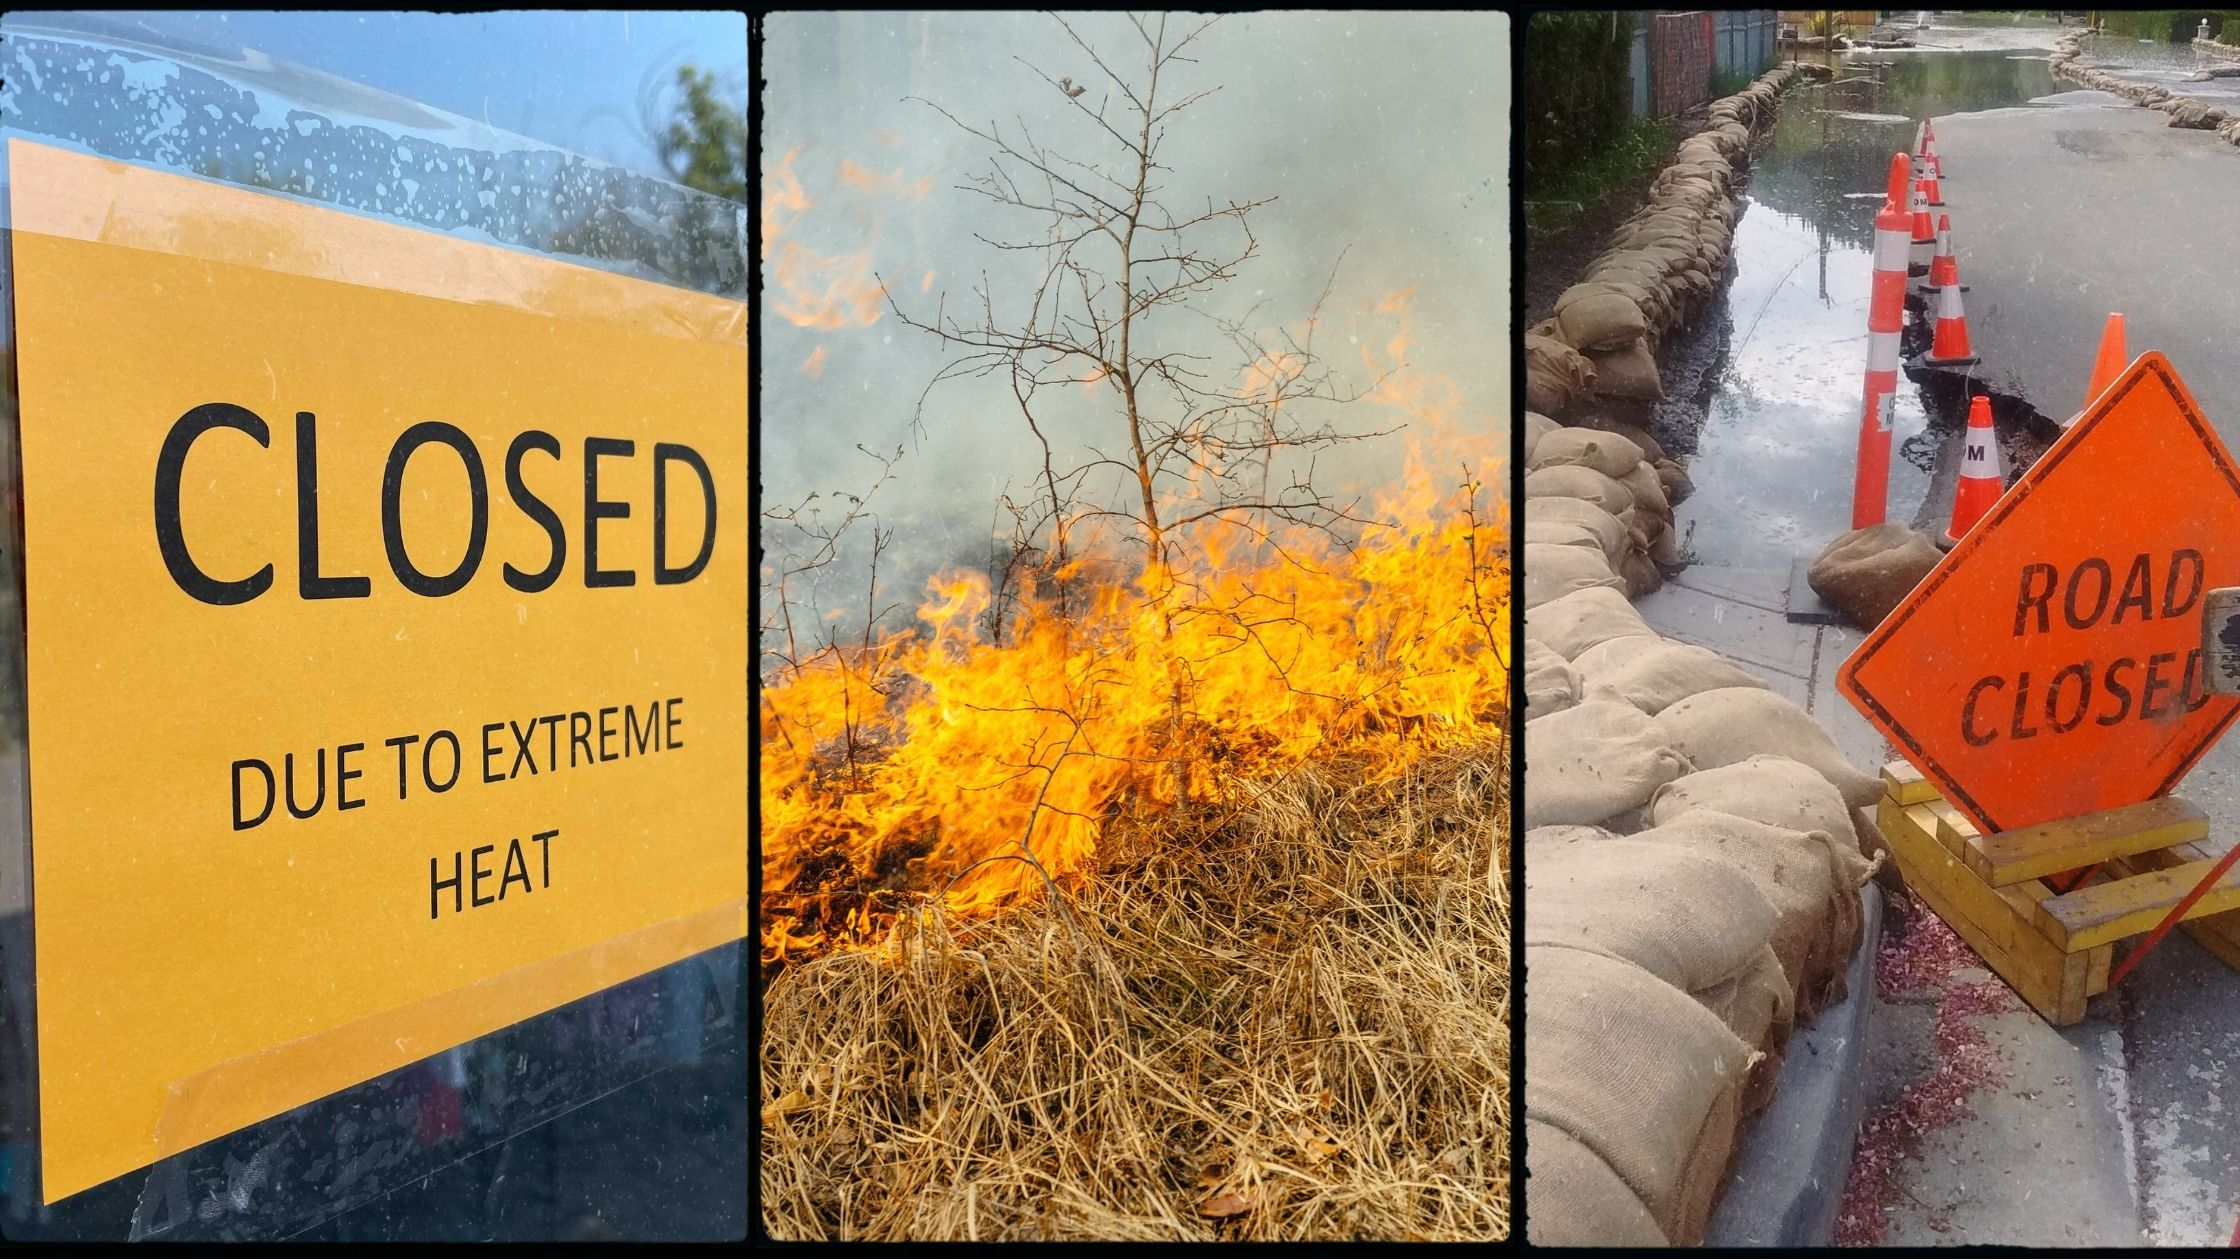 Collage graphic with images of heatwave, wildfire and flooded road with sandbags